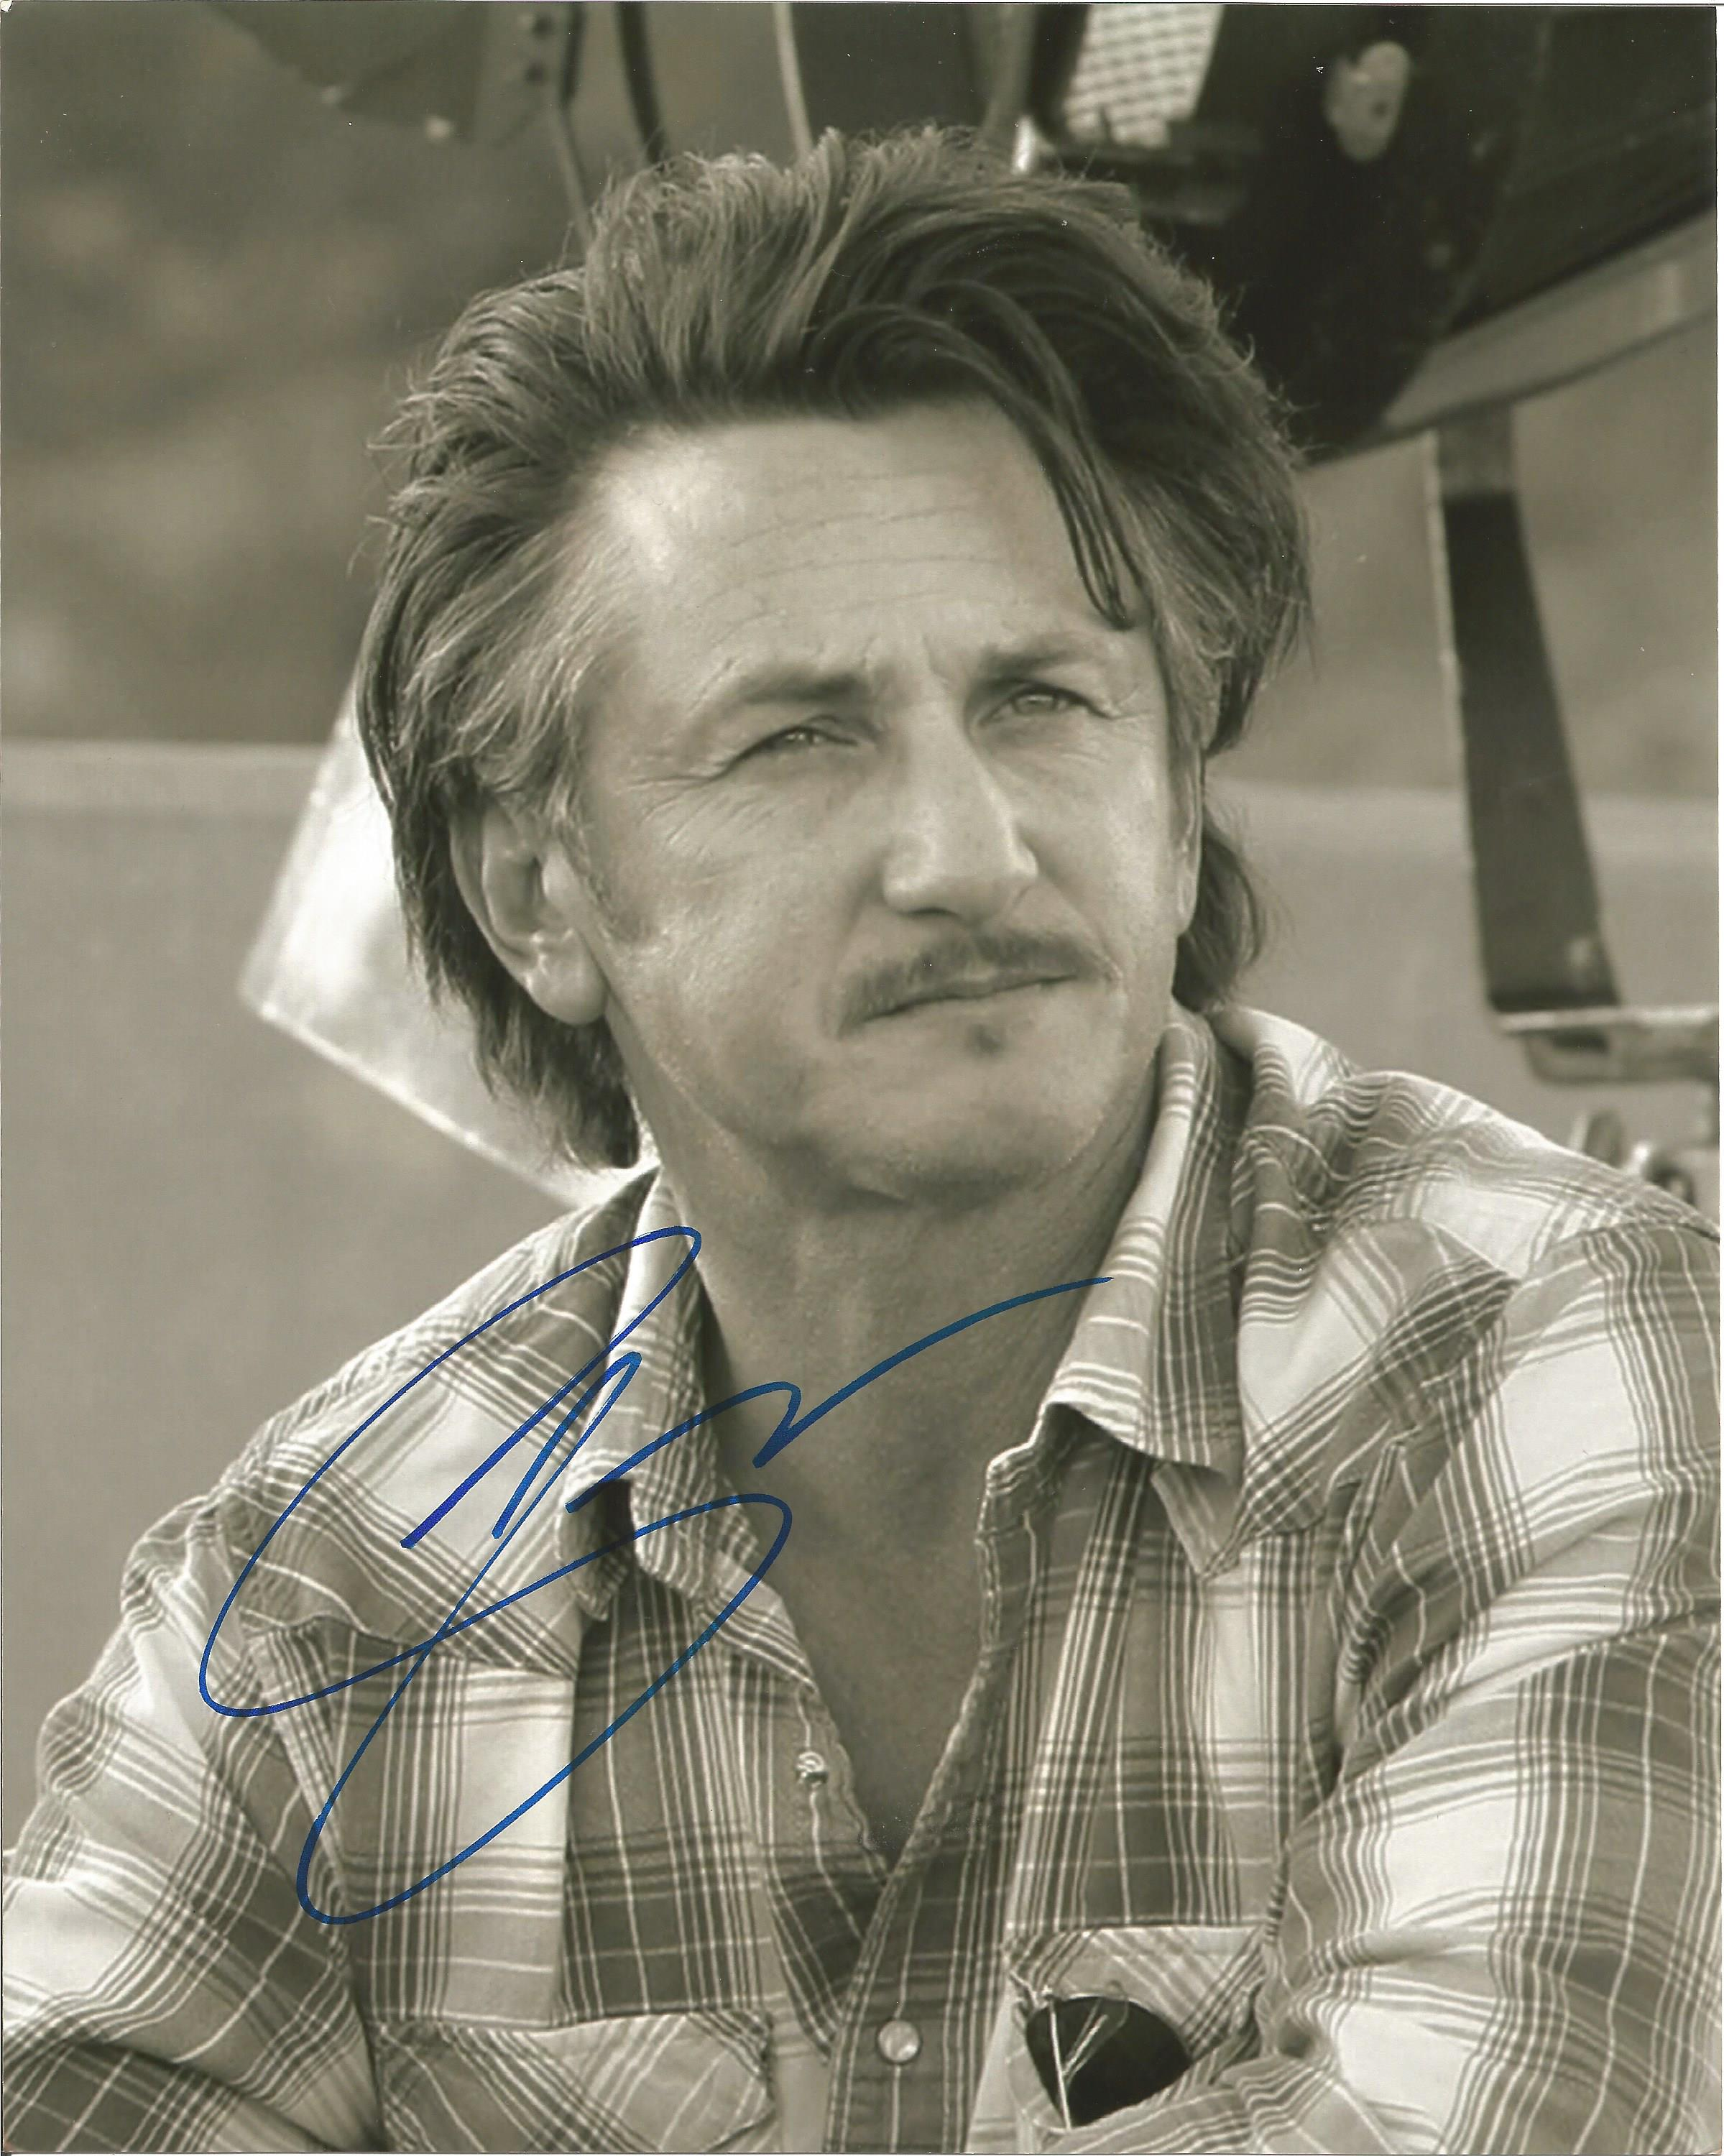 Lot 42 - Sean Penn signed 10 x 8 colour Photoshoot Portrait Photo, from in person collection autographed at